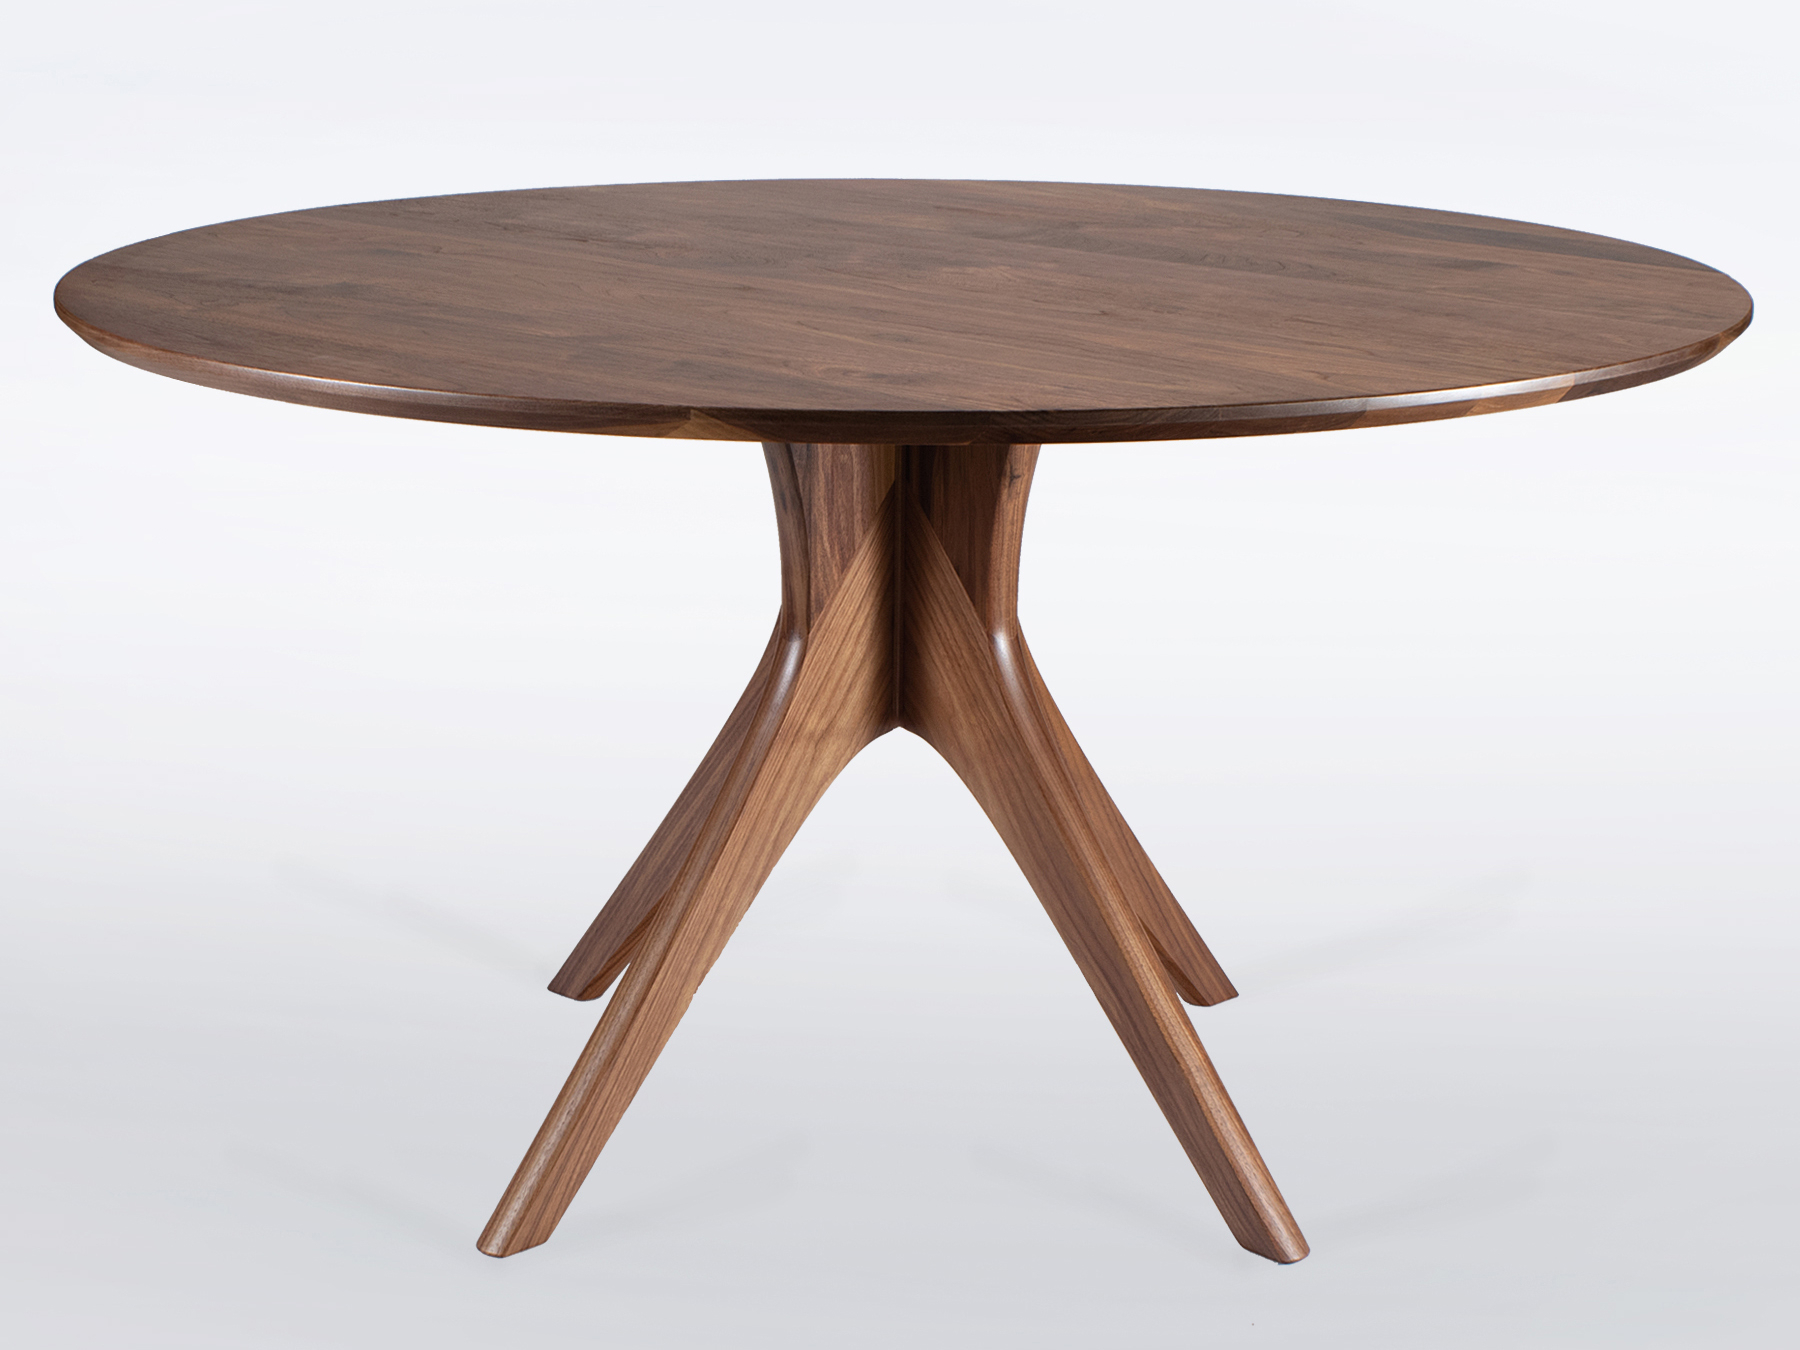 Walnut Pedestal Dining Table – Table Design Ideas Pertaining To Current Warner Round Pedestal Dining Tables (View 12 of 25)